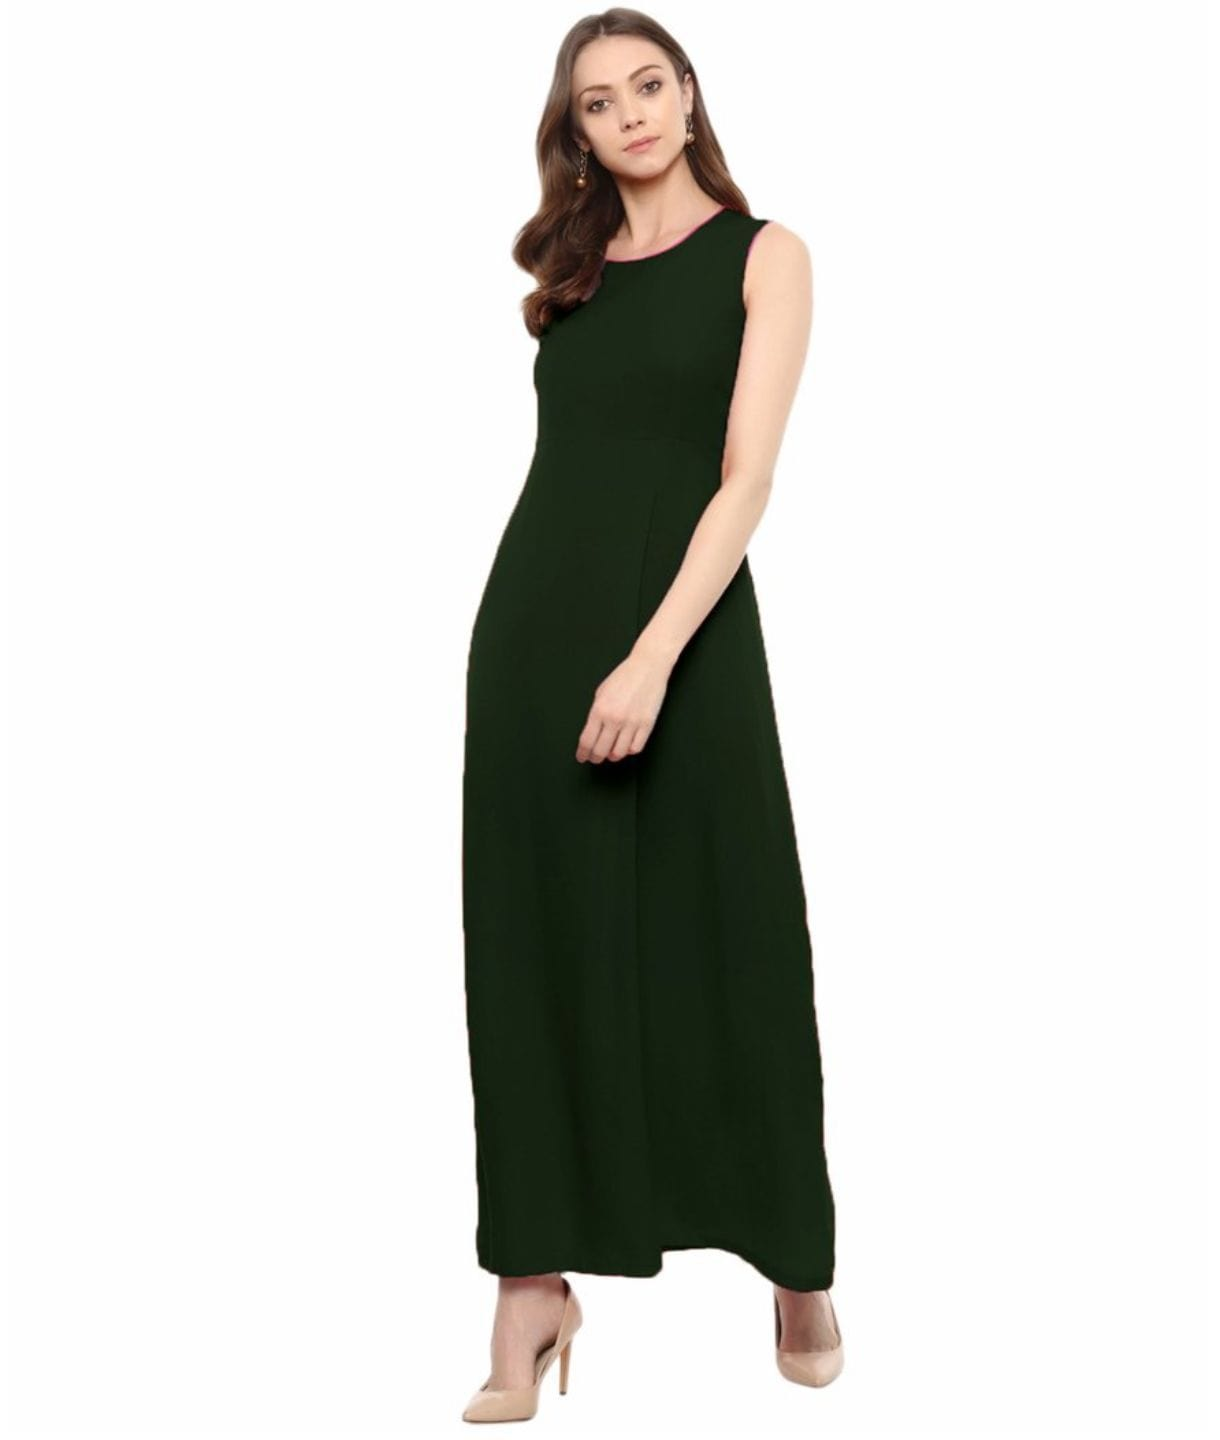 Army Green Solid Sleeveless Crepe Maxi Dress/Gown